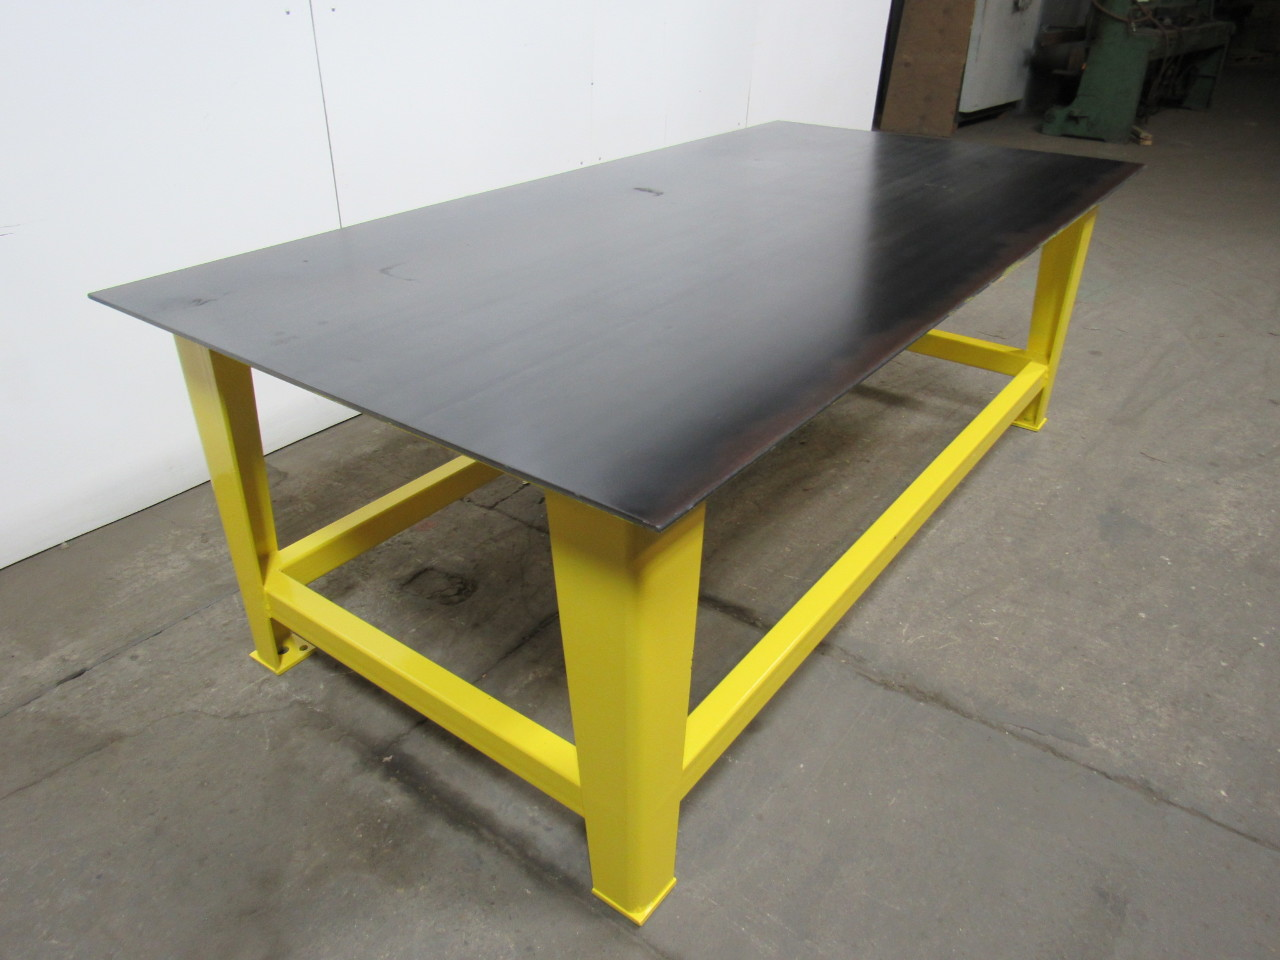 3 X 8 Table Steel Welding Work Bench Assembly Layout Table 96 Quot X 48 Quot 3